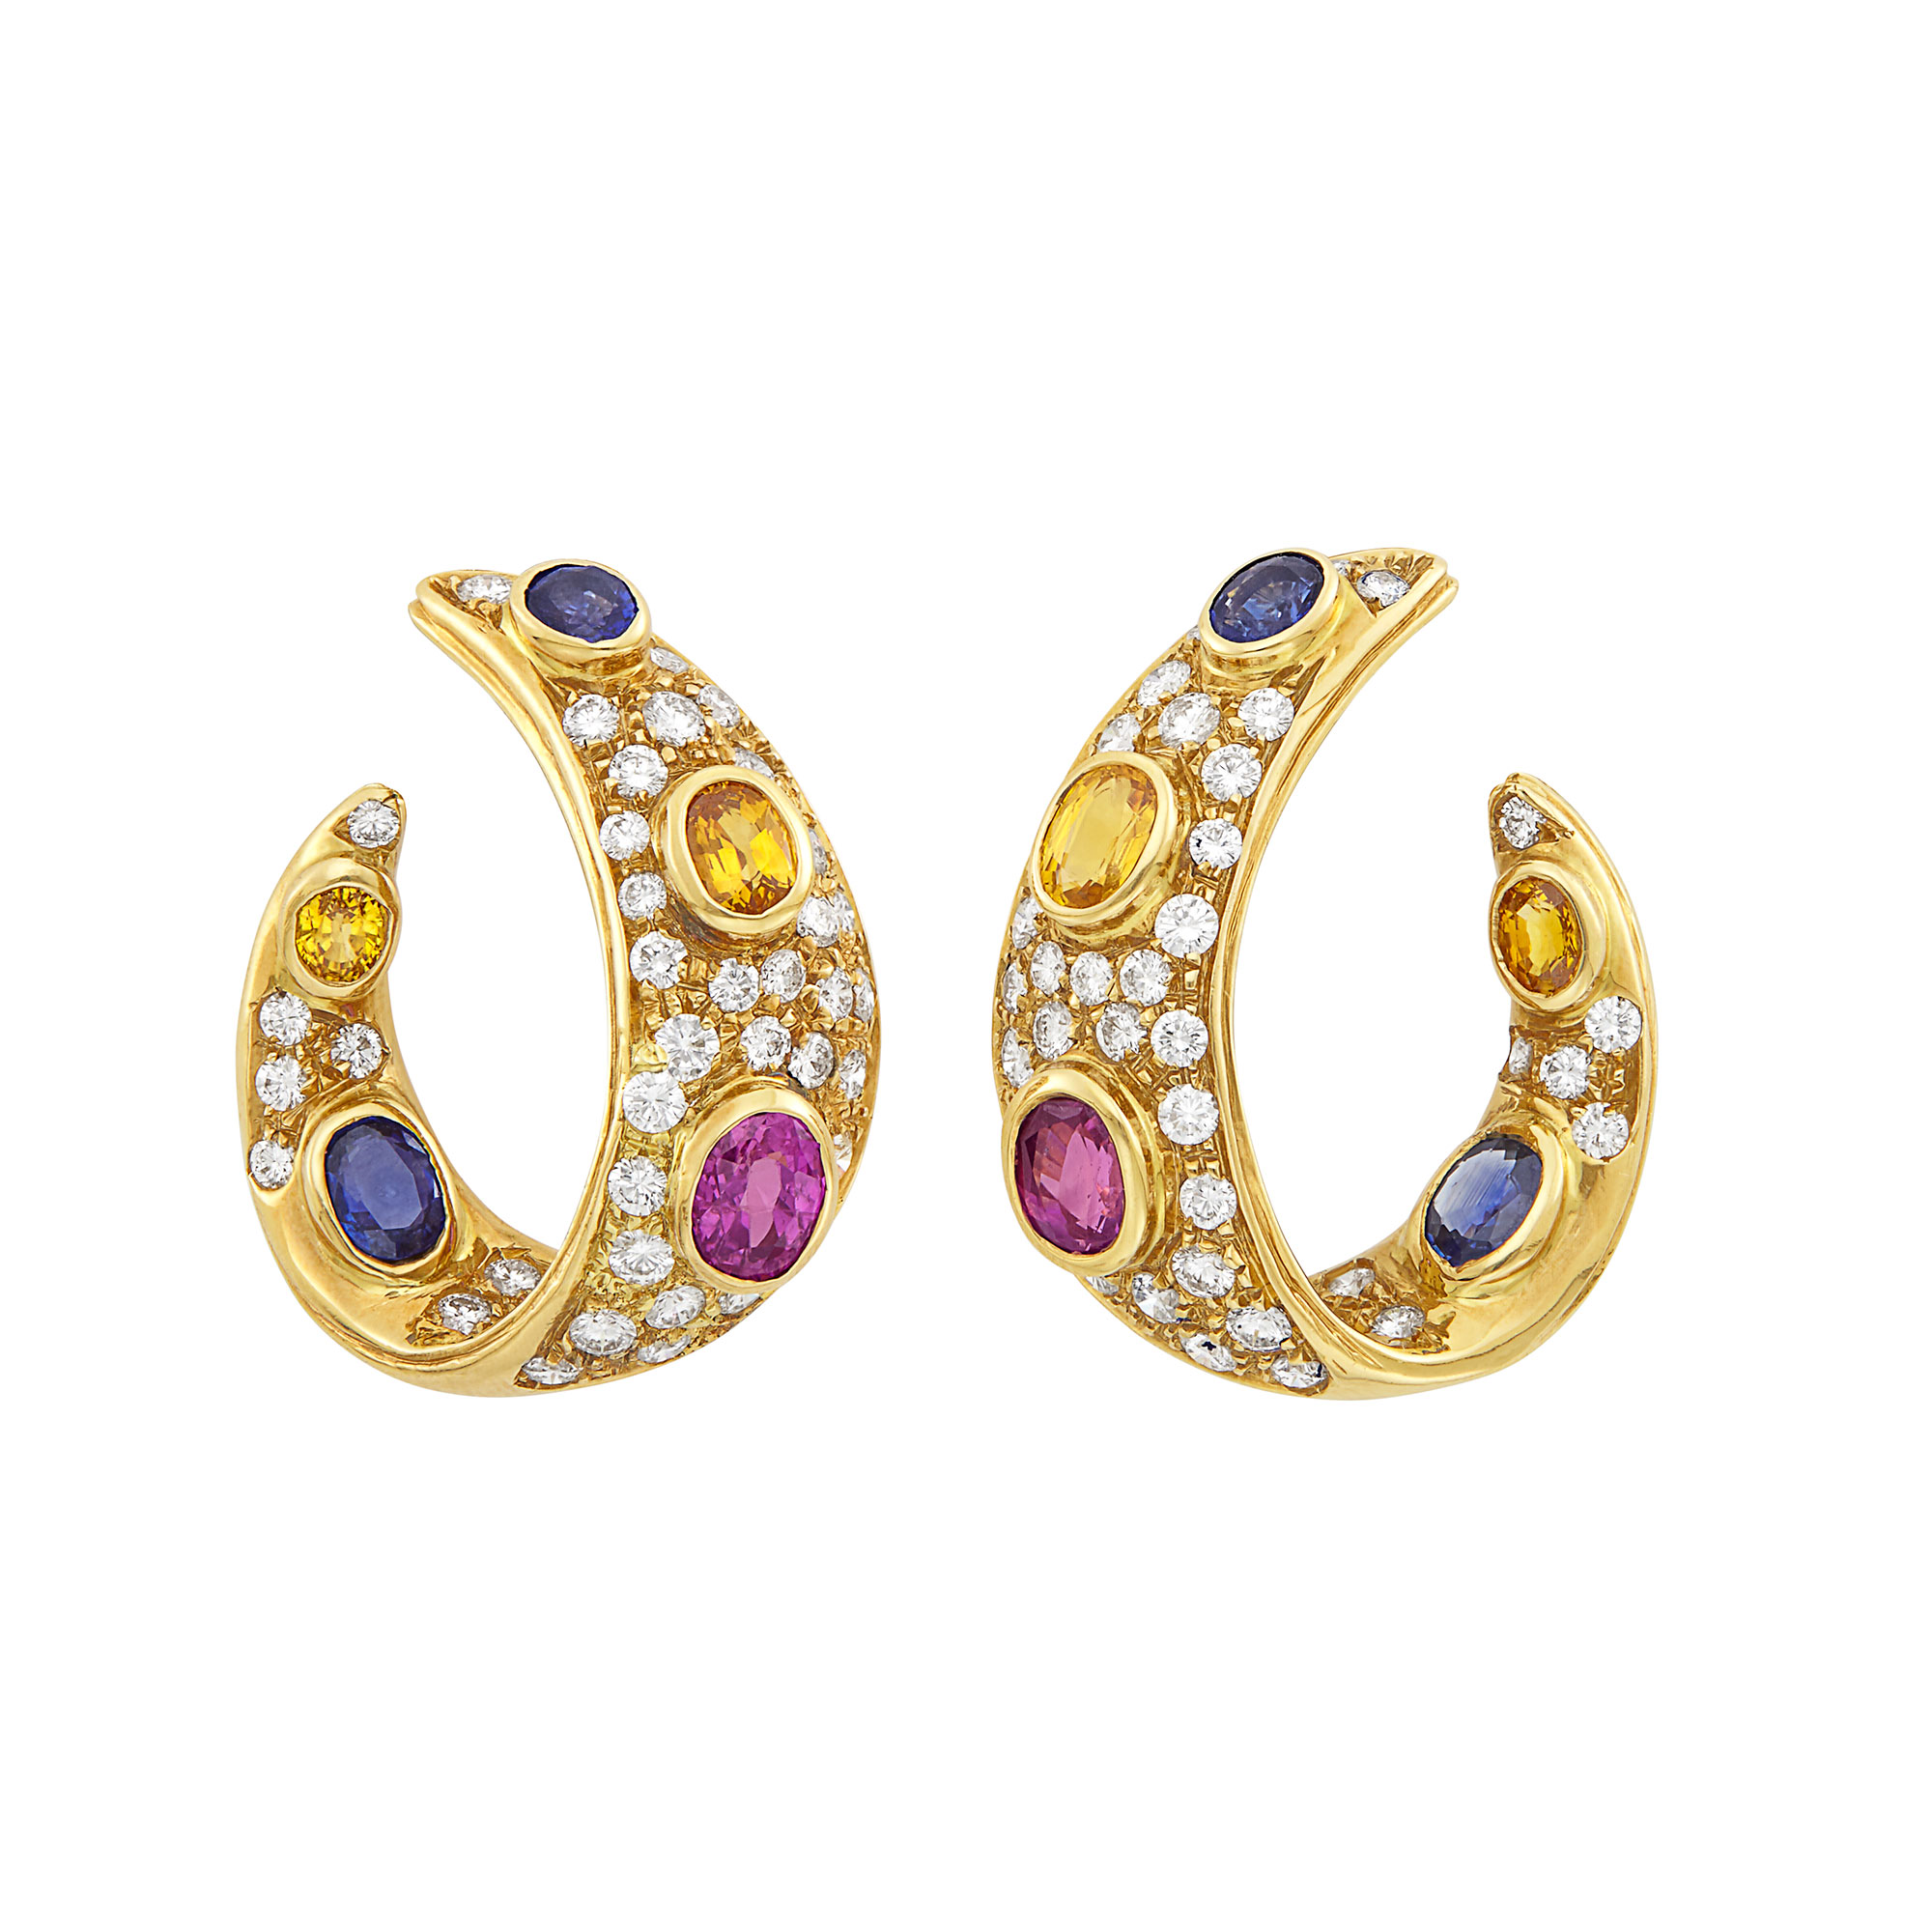 Lot image - Pair of Gold, Multicolored Sapphire and Diamond Hoop Earrings